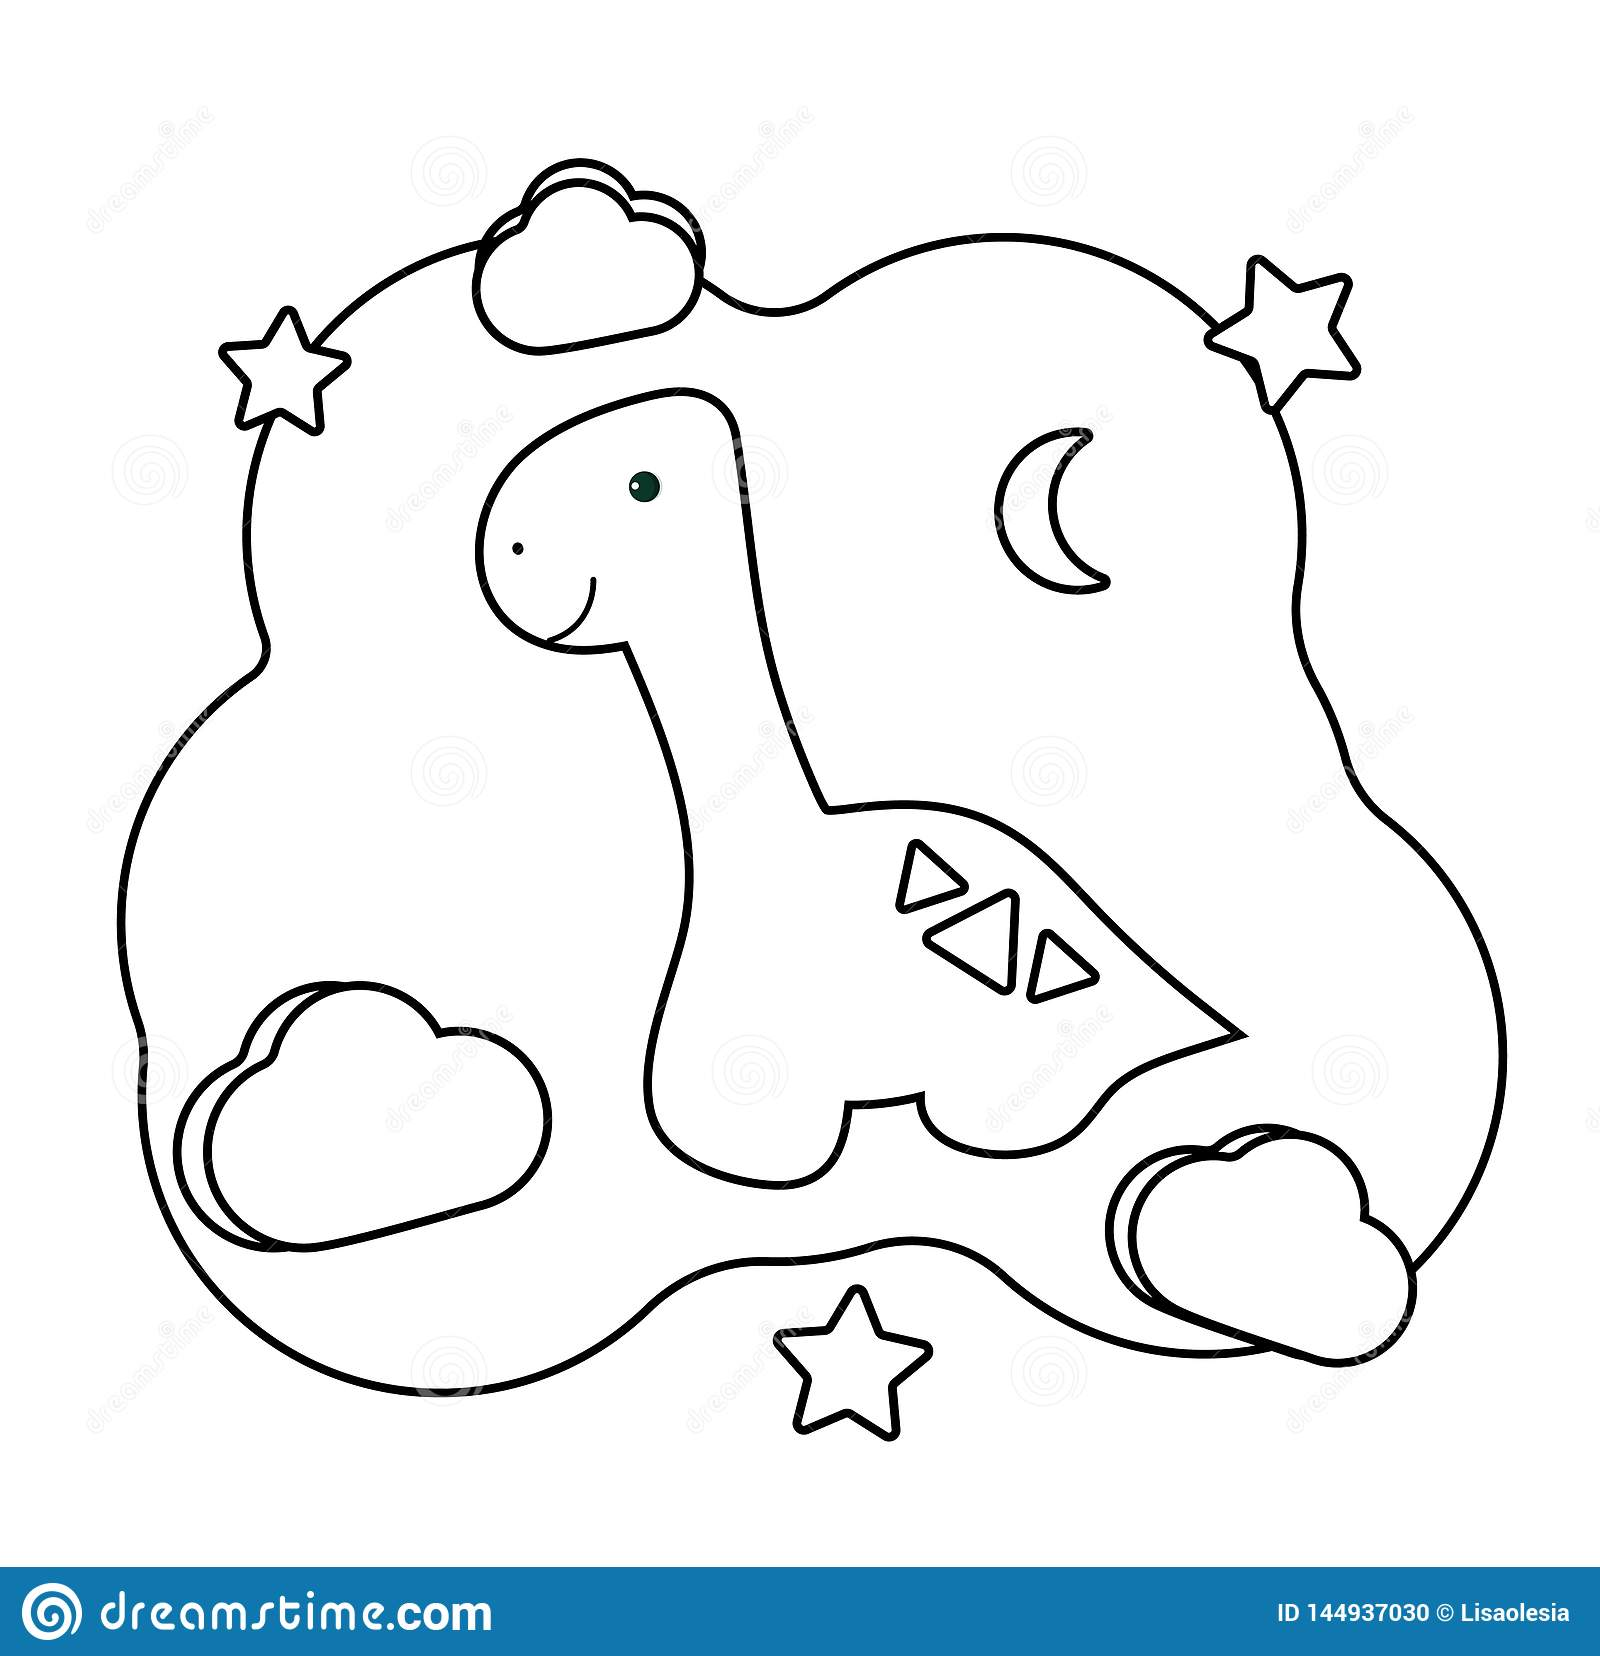 Cute Dino Coloring Page With Dinosaur Printable Game On